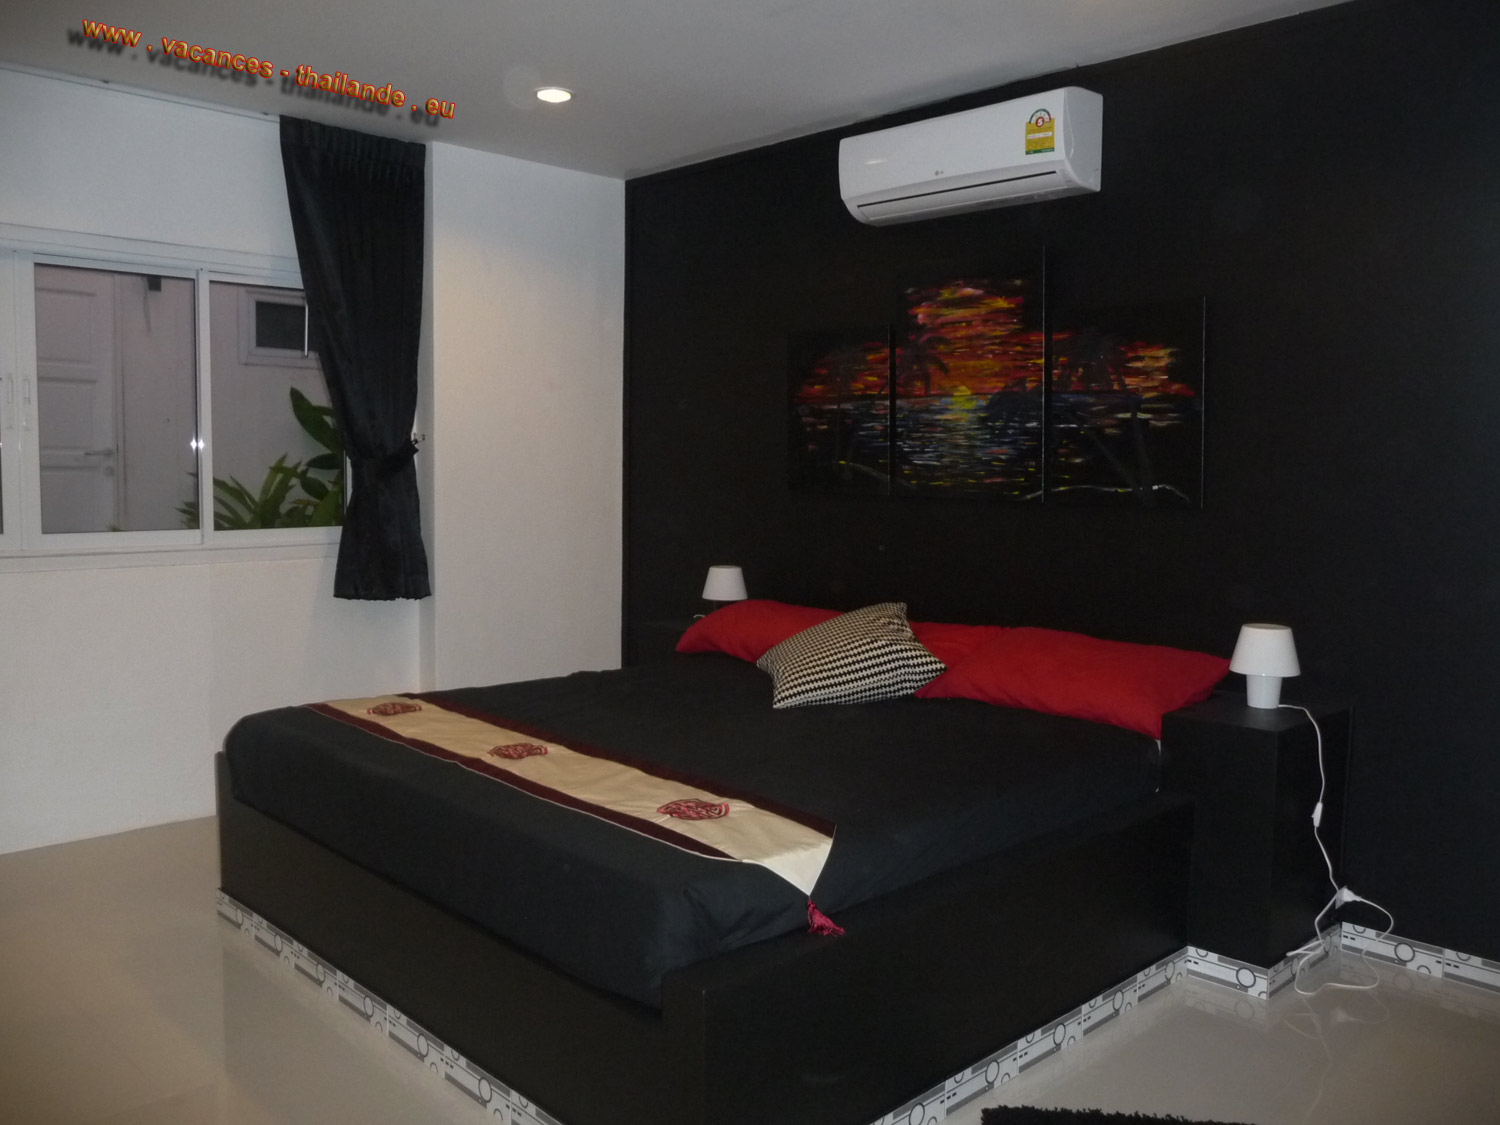 holiday-thailand house with the red room and double bed with 1.5 m rented scooters for your problem without displacement,